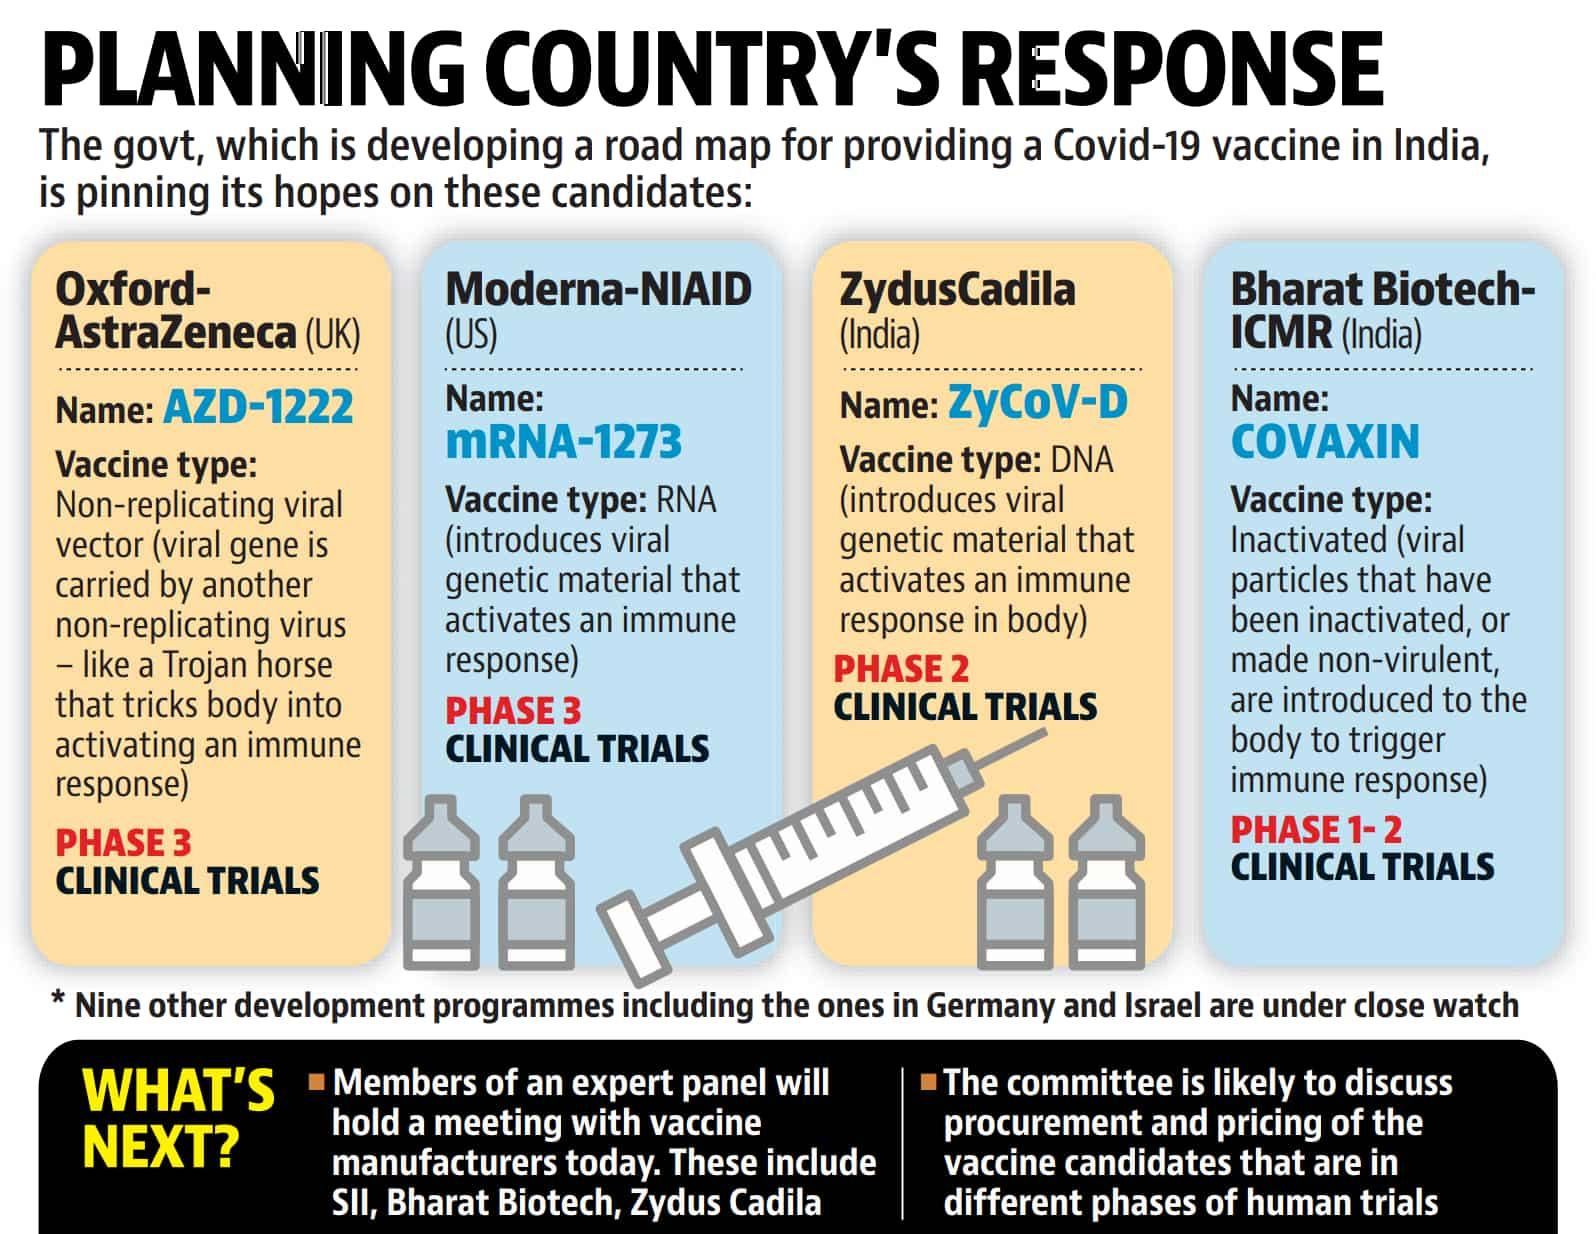 India eyes global front runners in Covid-19 vaccine plan - india news -  Hindustan Times